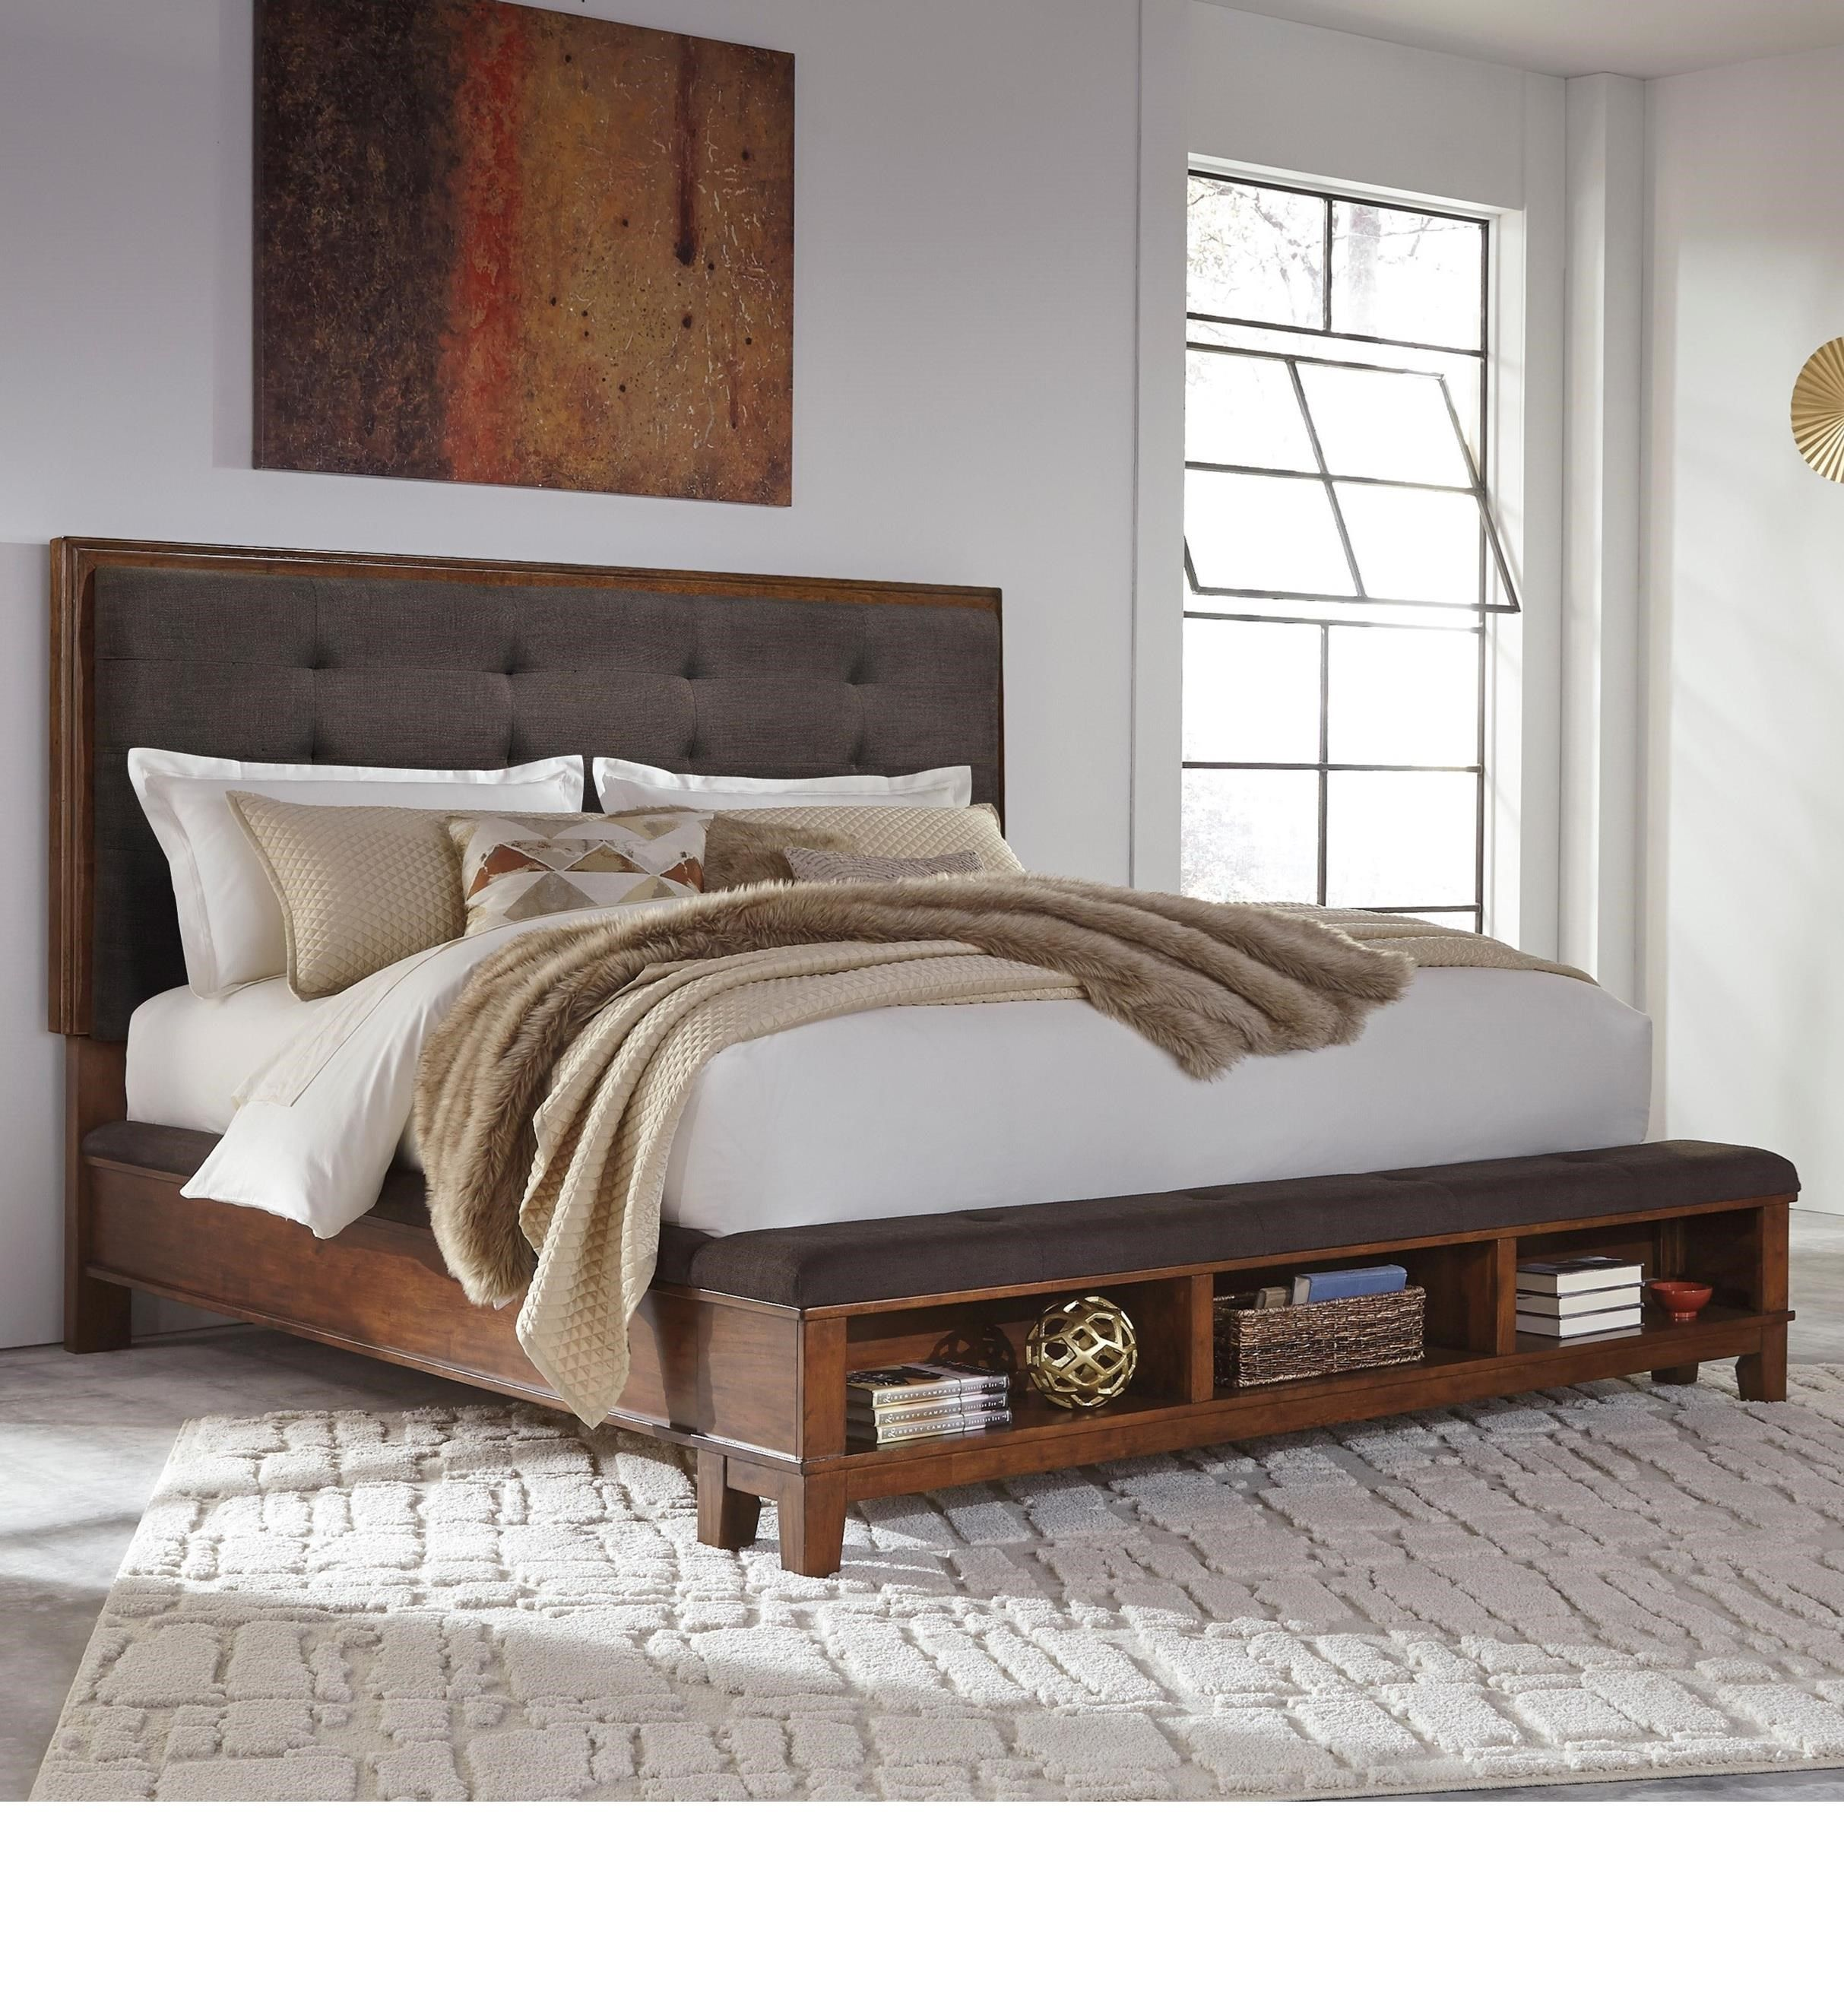 Ralene king upholstered bed with bench storage footboard by